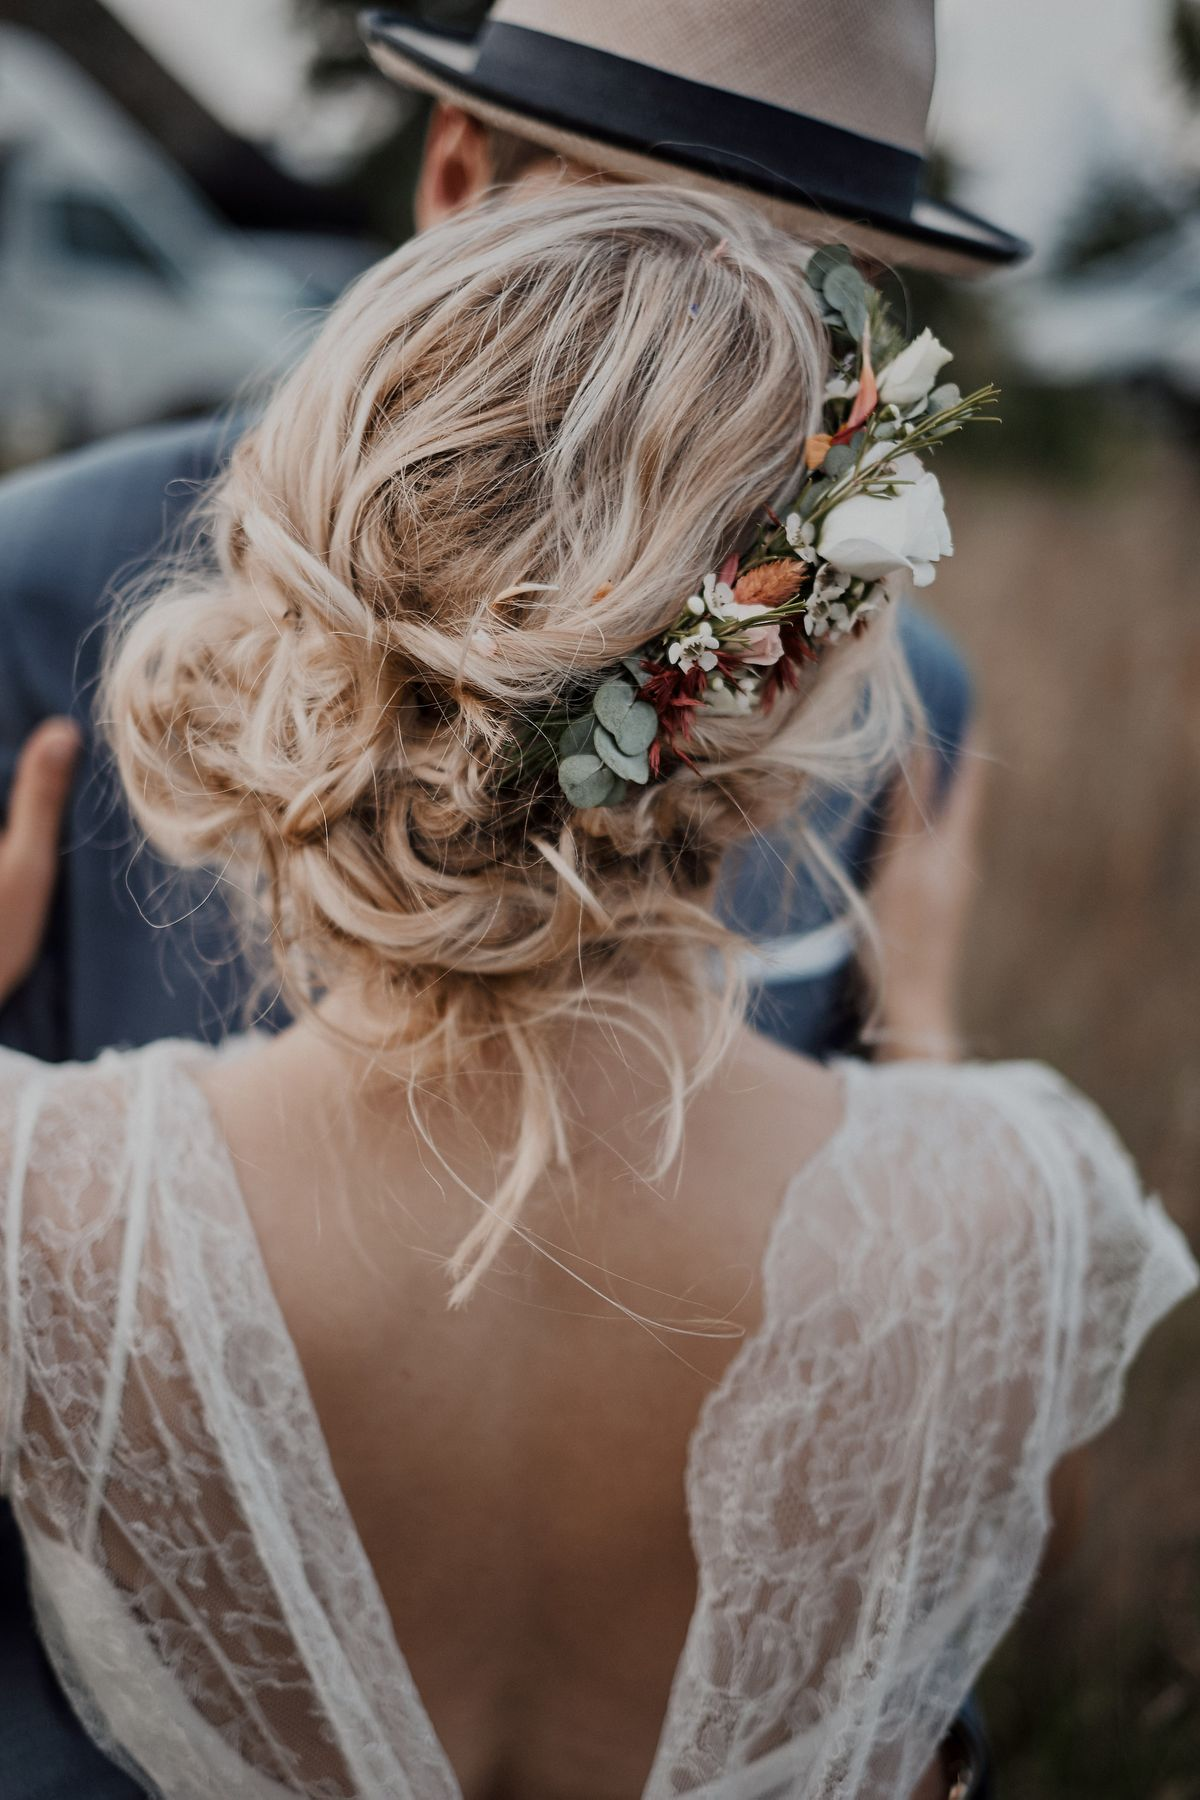 "Bridal Hairgoals! <a class=""pintag"" href=""/explore/iayrealbride/"" title=""#iayrealbride explore Pinterest"">#iayrealbride</a> Lena captured by Muse&Mirror<p><a href=""http://www.homeinteriordesign.org/2018/02/short-guide-to-interior-decoration.html"">Short guide to interior decoration</a></p>"